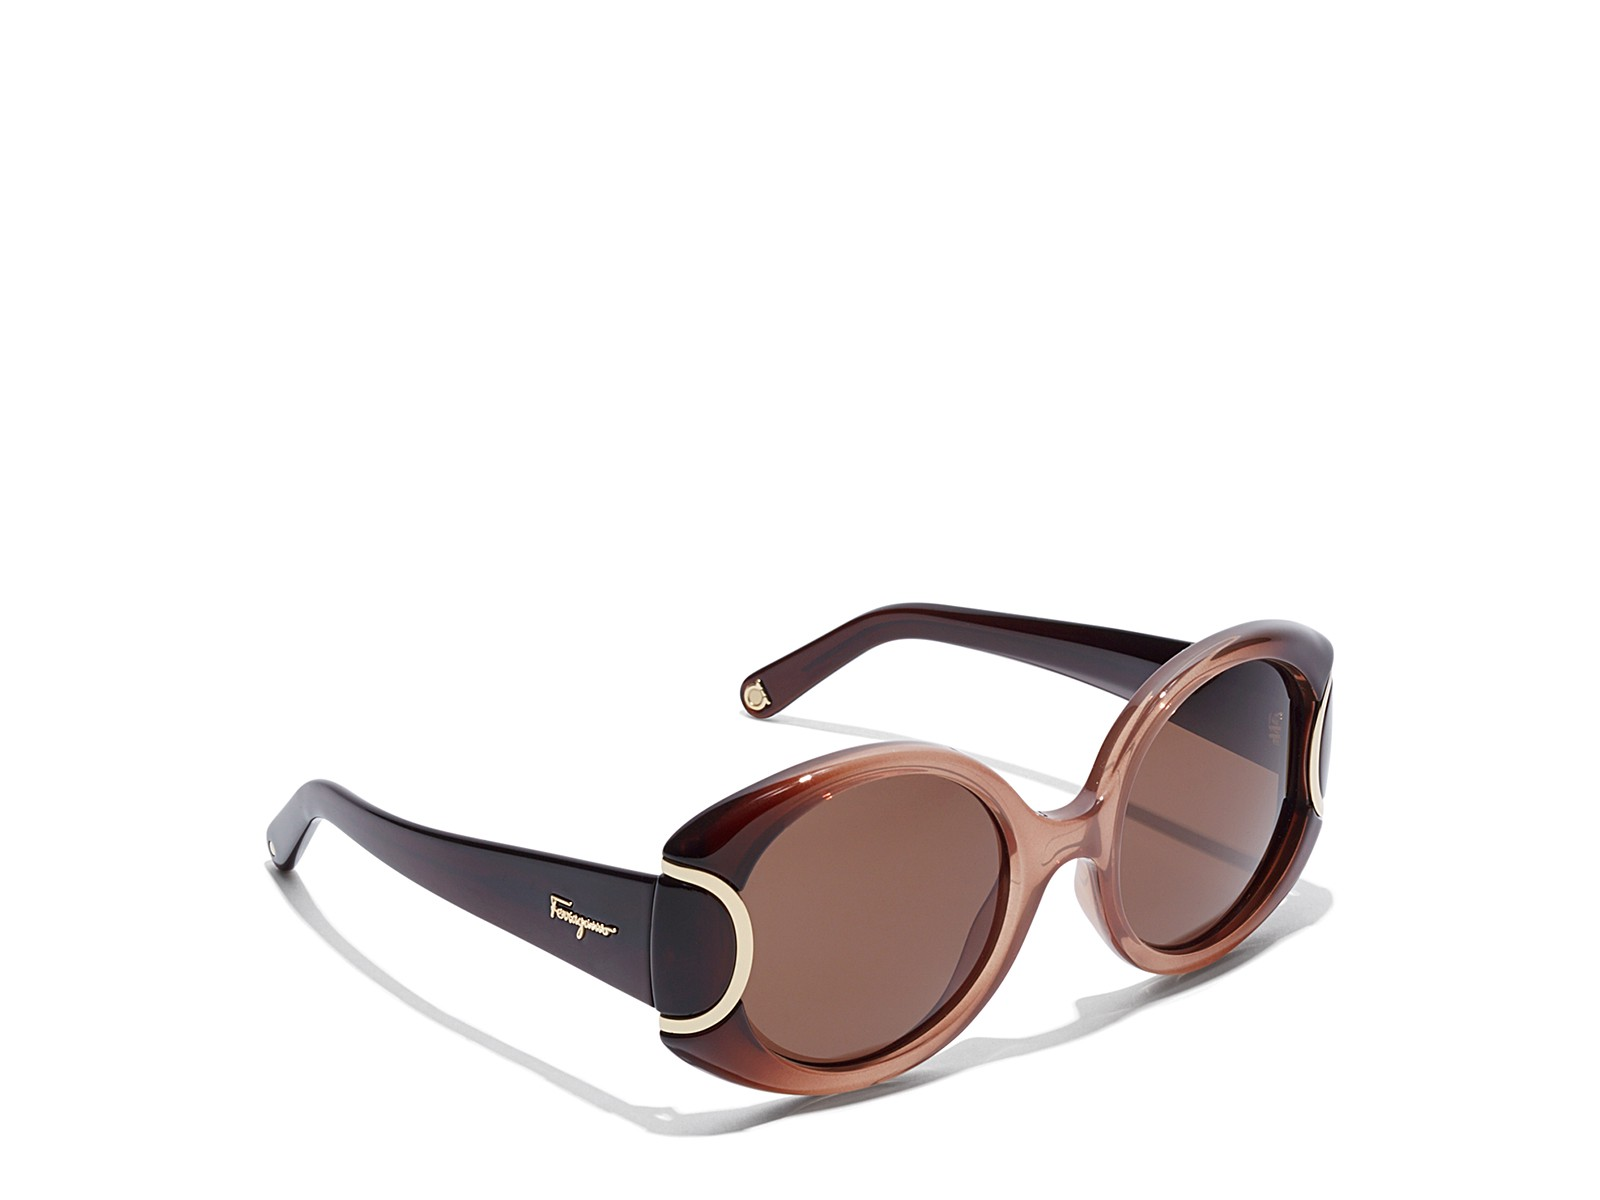 Salvatore Ferragamo Signature Collection Sunglasses In Brown Gradient